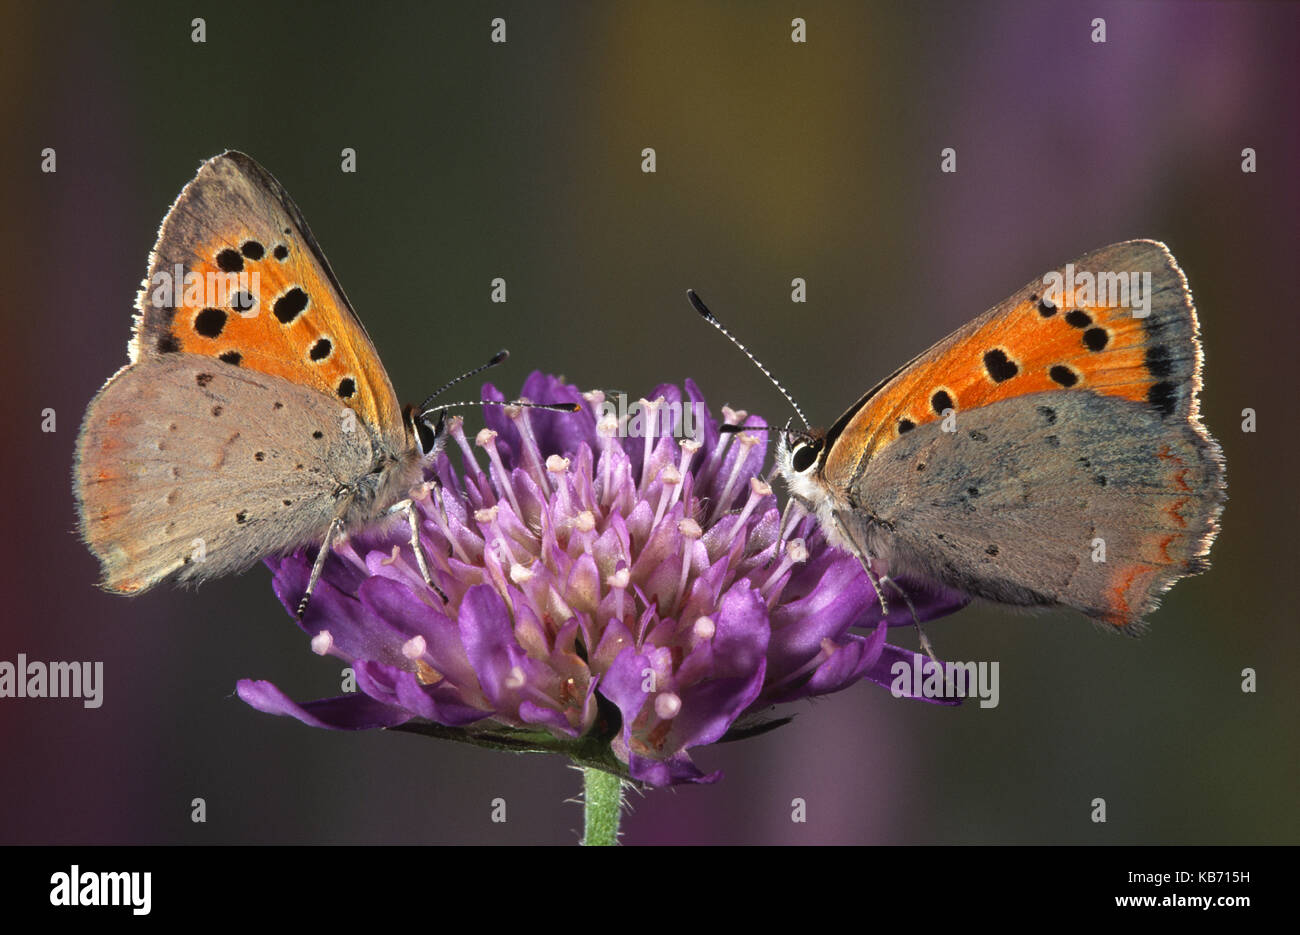 Small Copper (Lycaena phlaeas) butterflies resting on a flower, Belgium - Stock Image